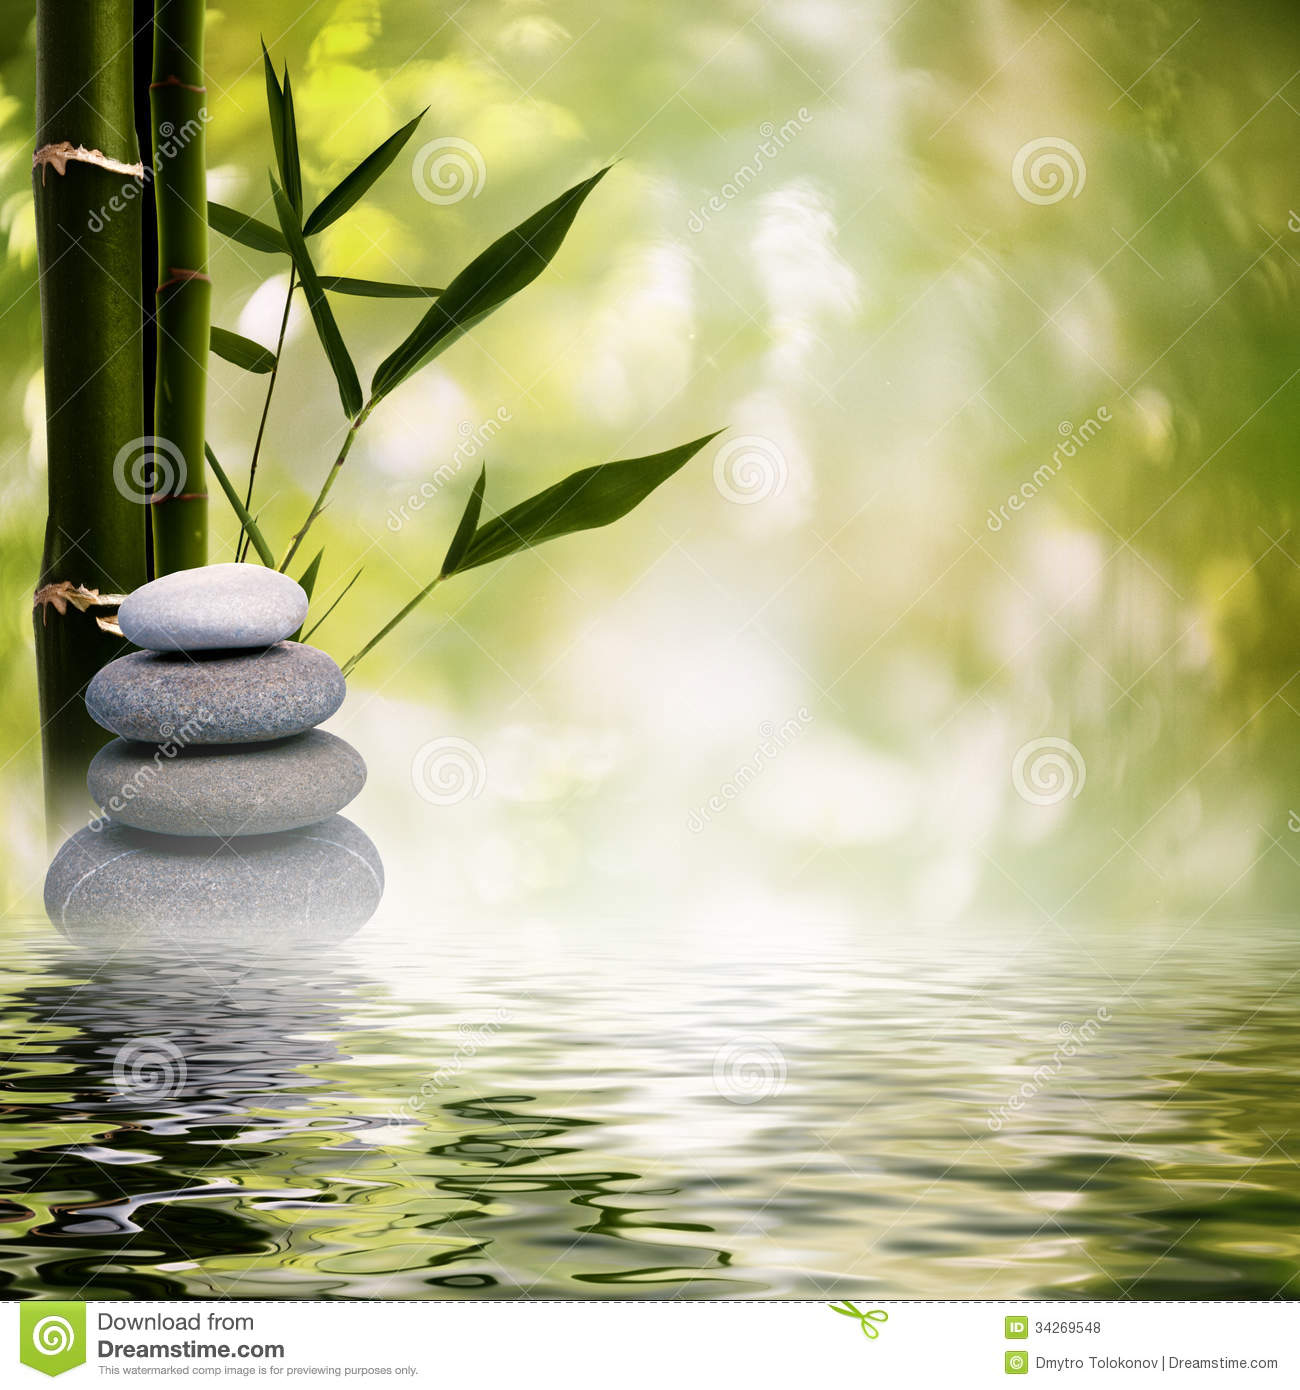 Abstract Asian Backgrounds Grass Peace